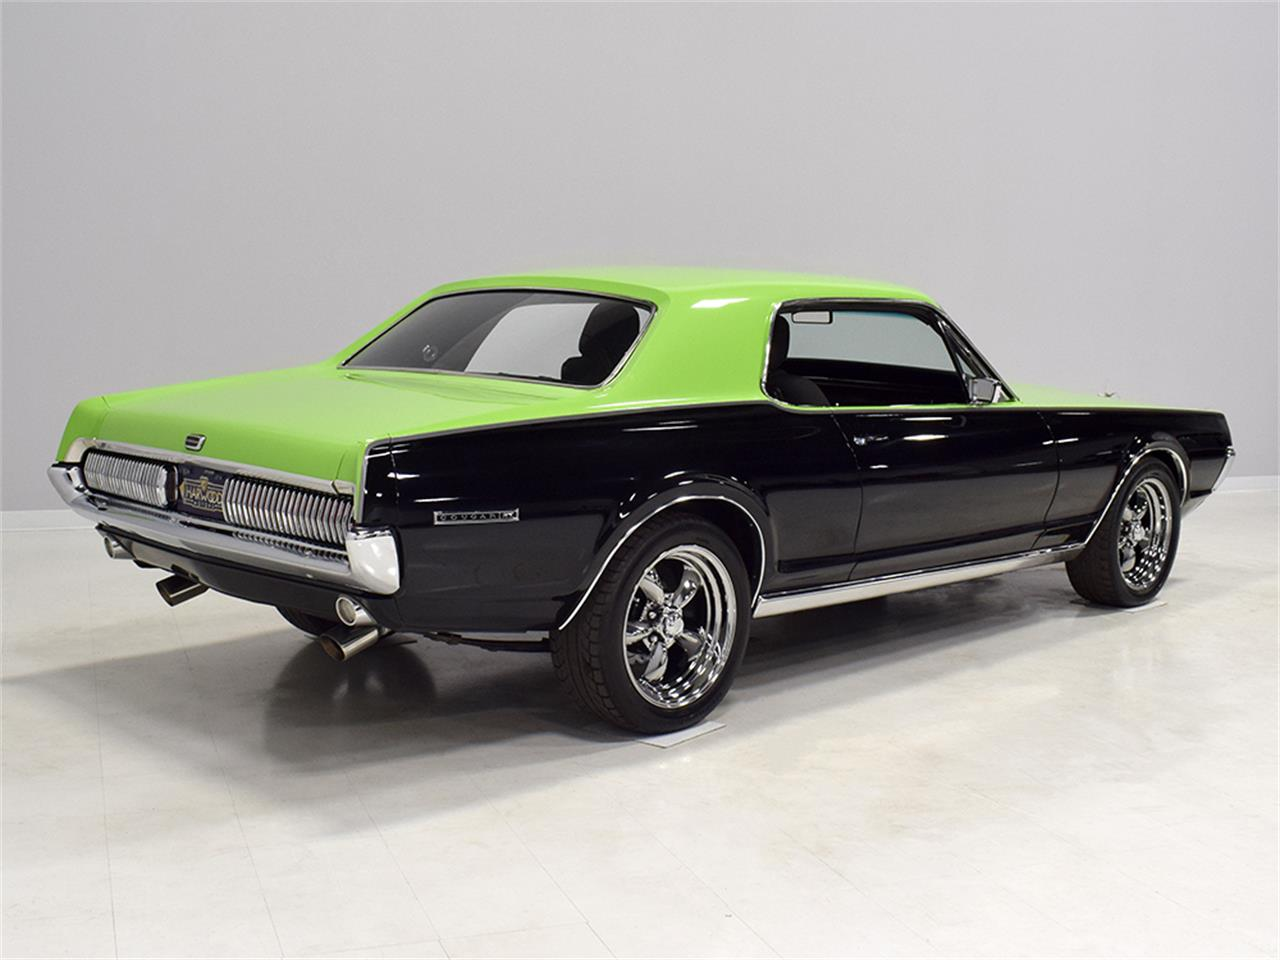 Large Picture of '67 Mercury Cougar - $49,900.00 Offered by Harwood Motors, LTD. - MH5X